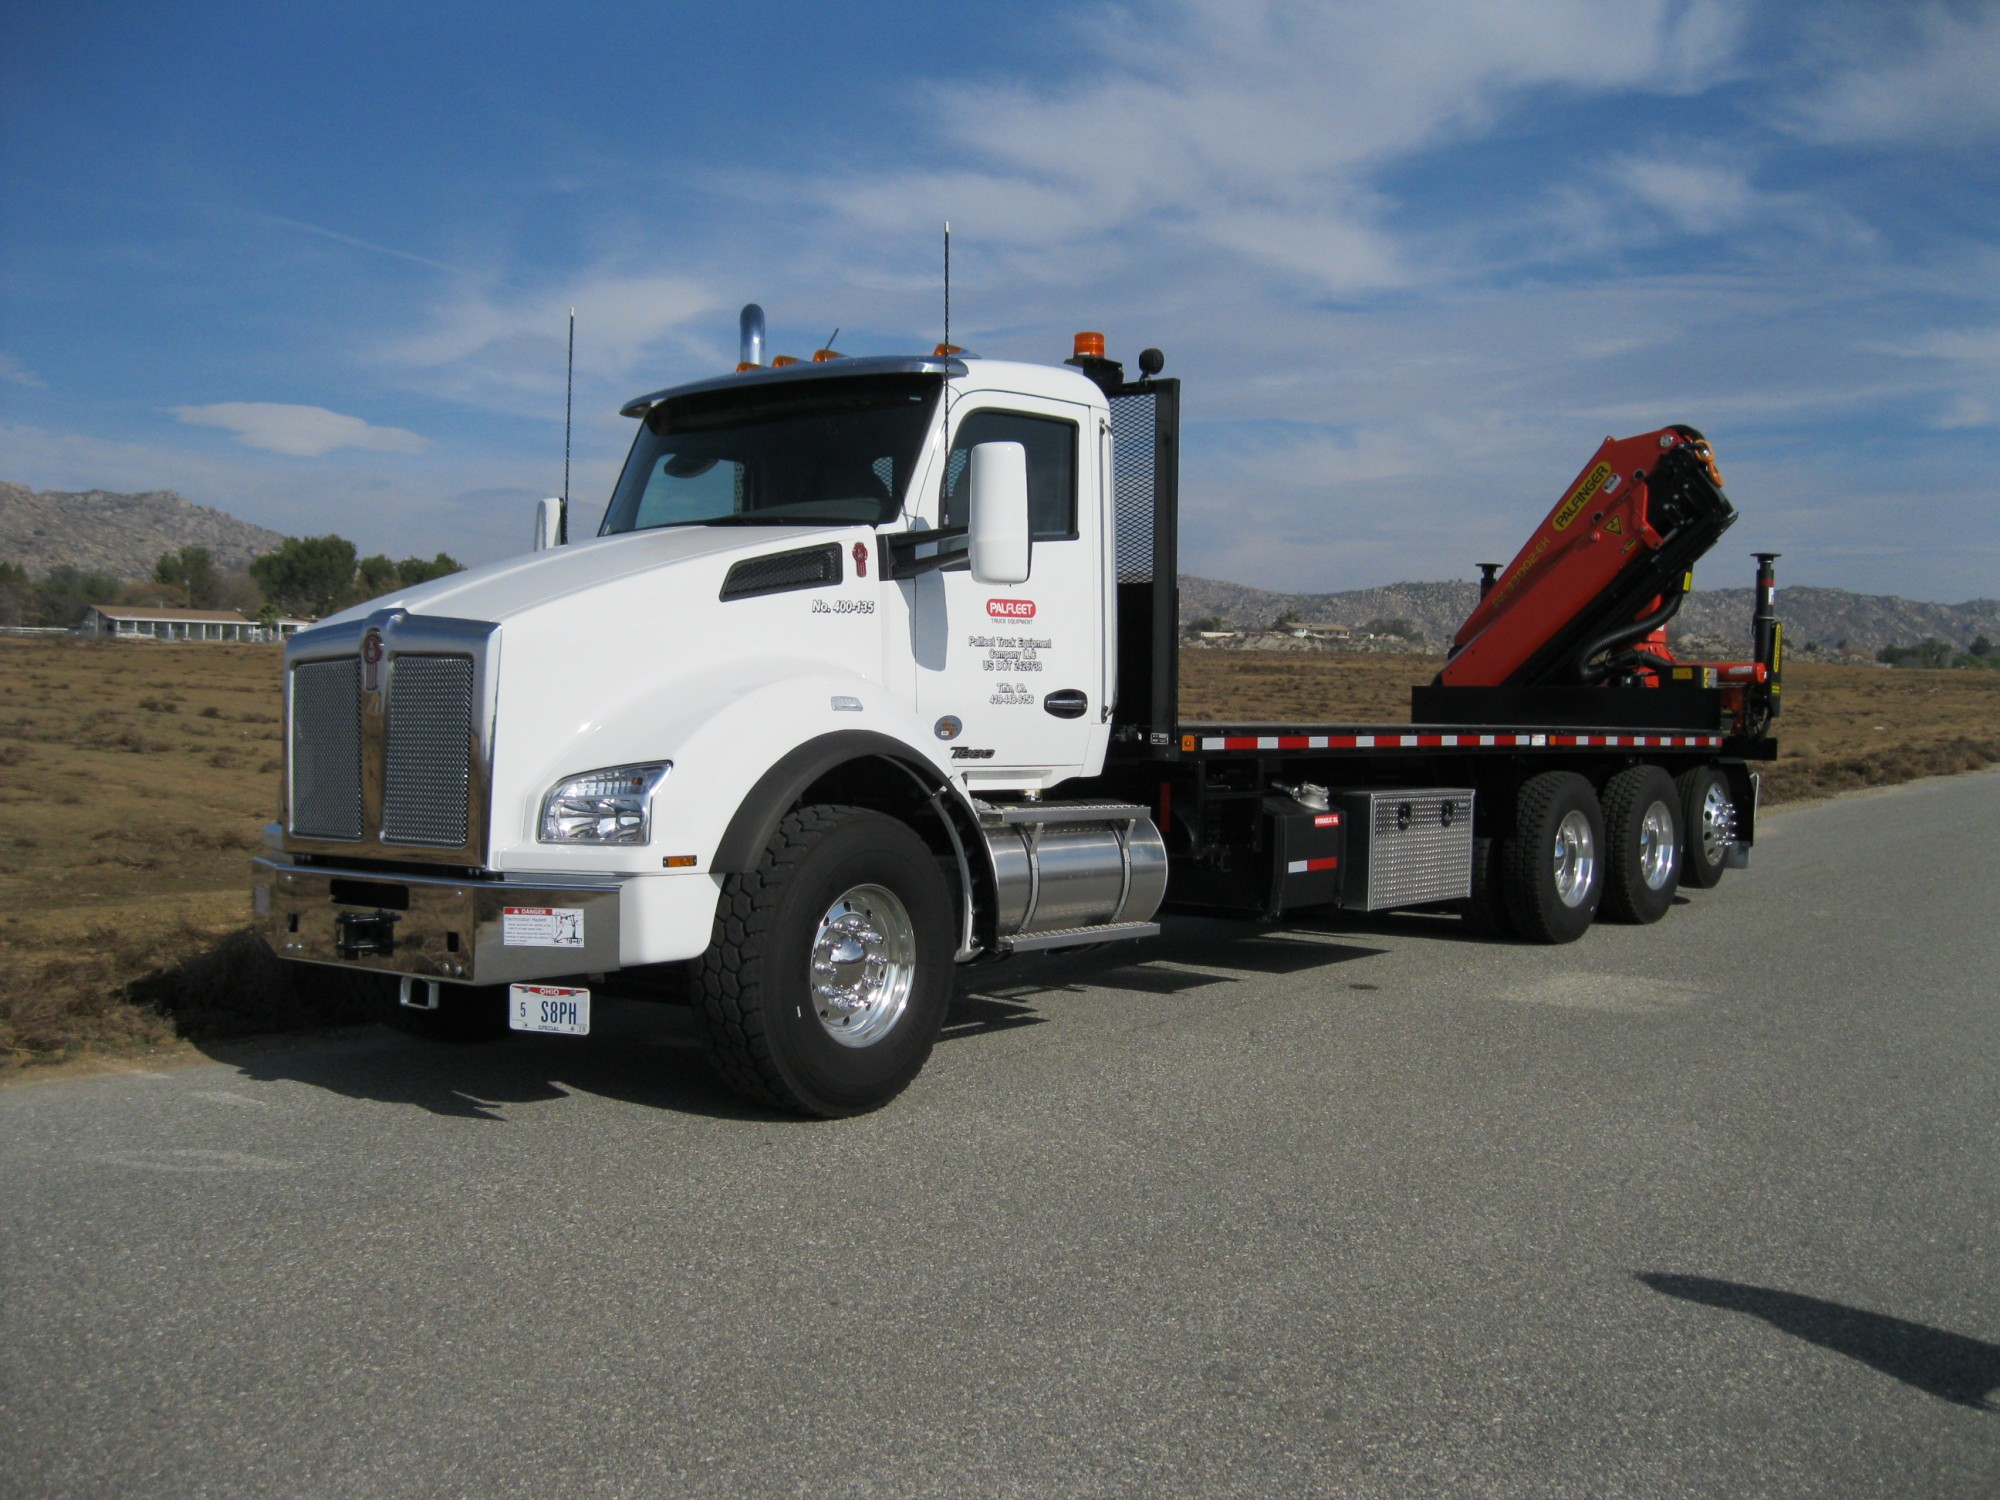 PK 33002 C - 2015 Kenworth T880 - Demo #135